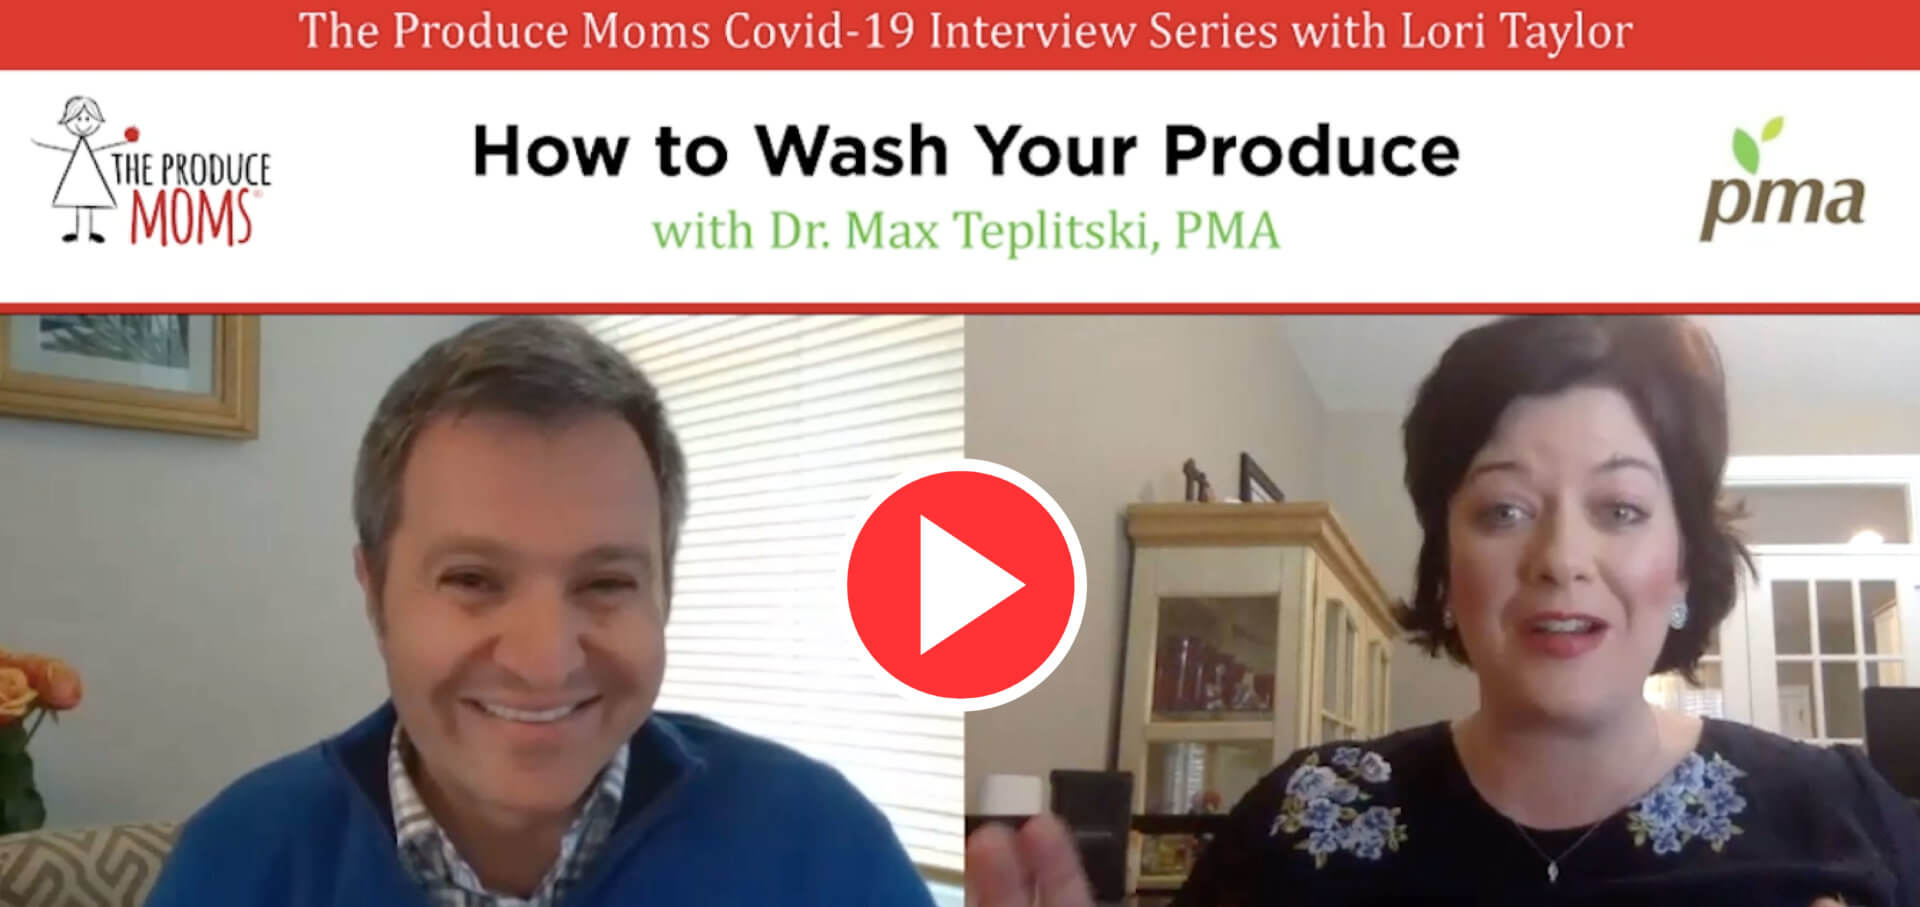 How to Wash Your Produce with Dr. Max Teplitski of the Produce Marketing Association